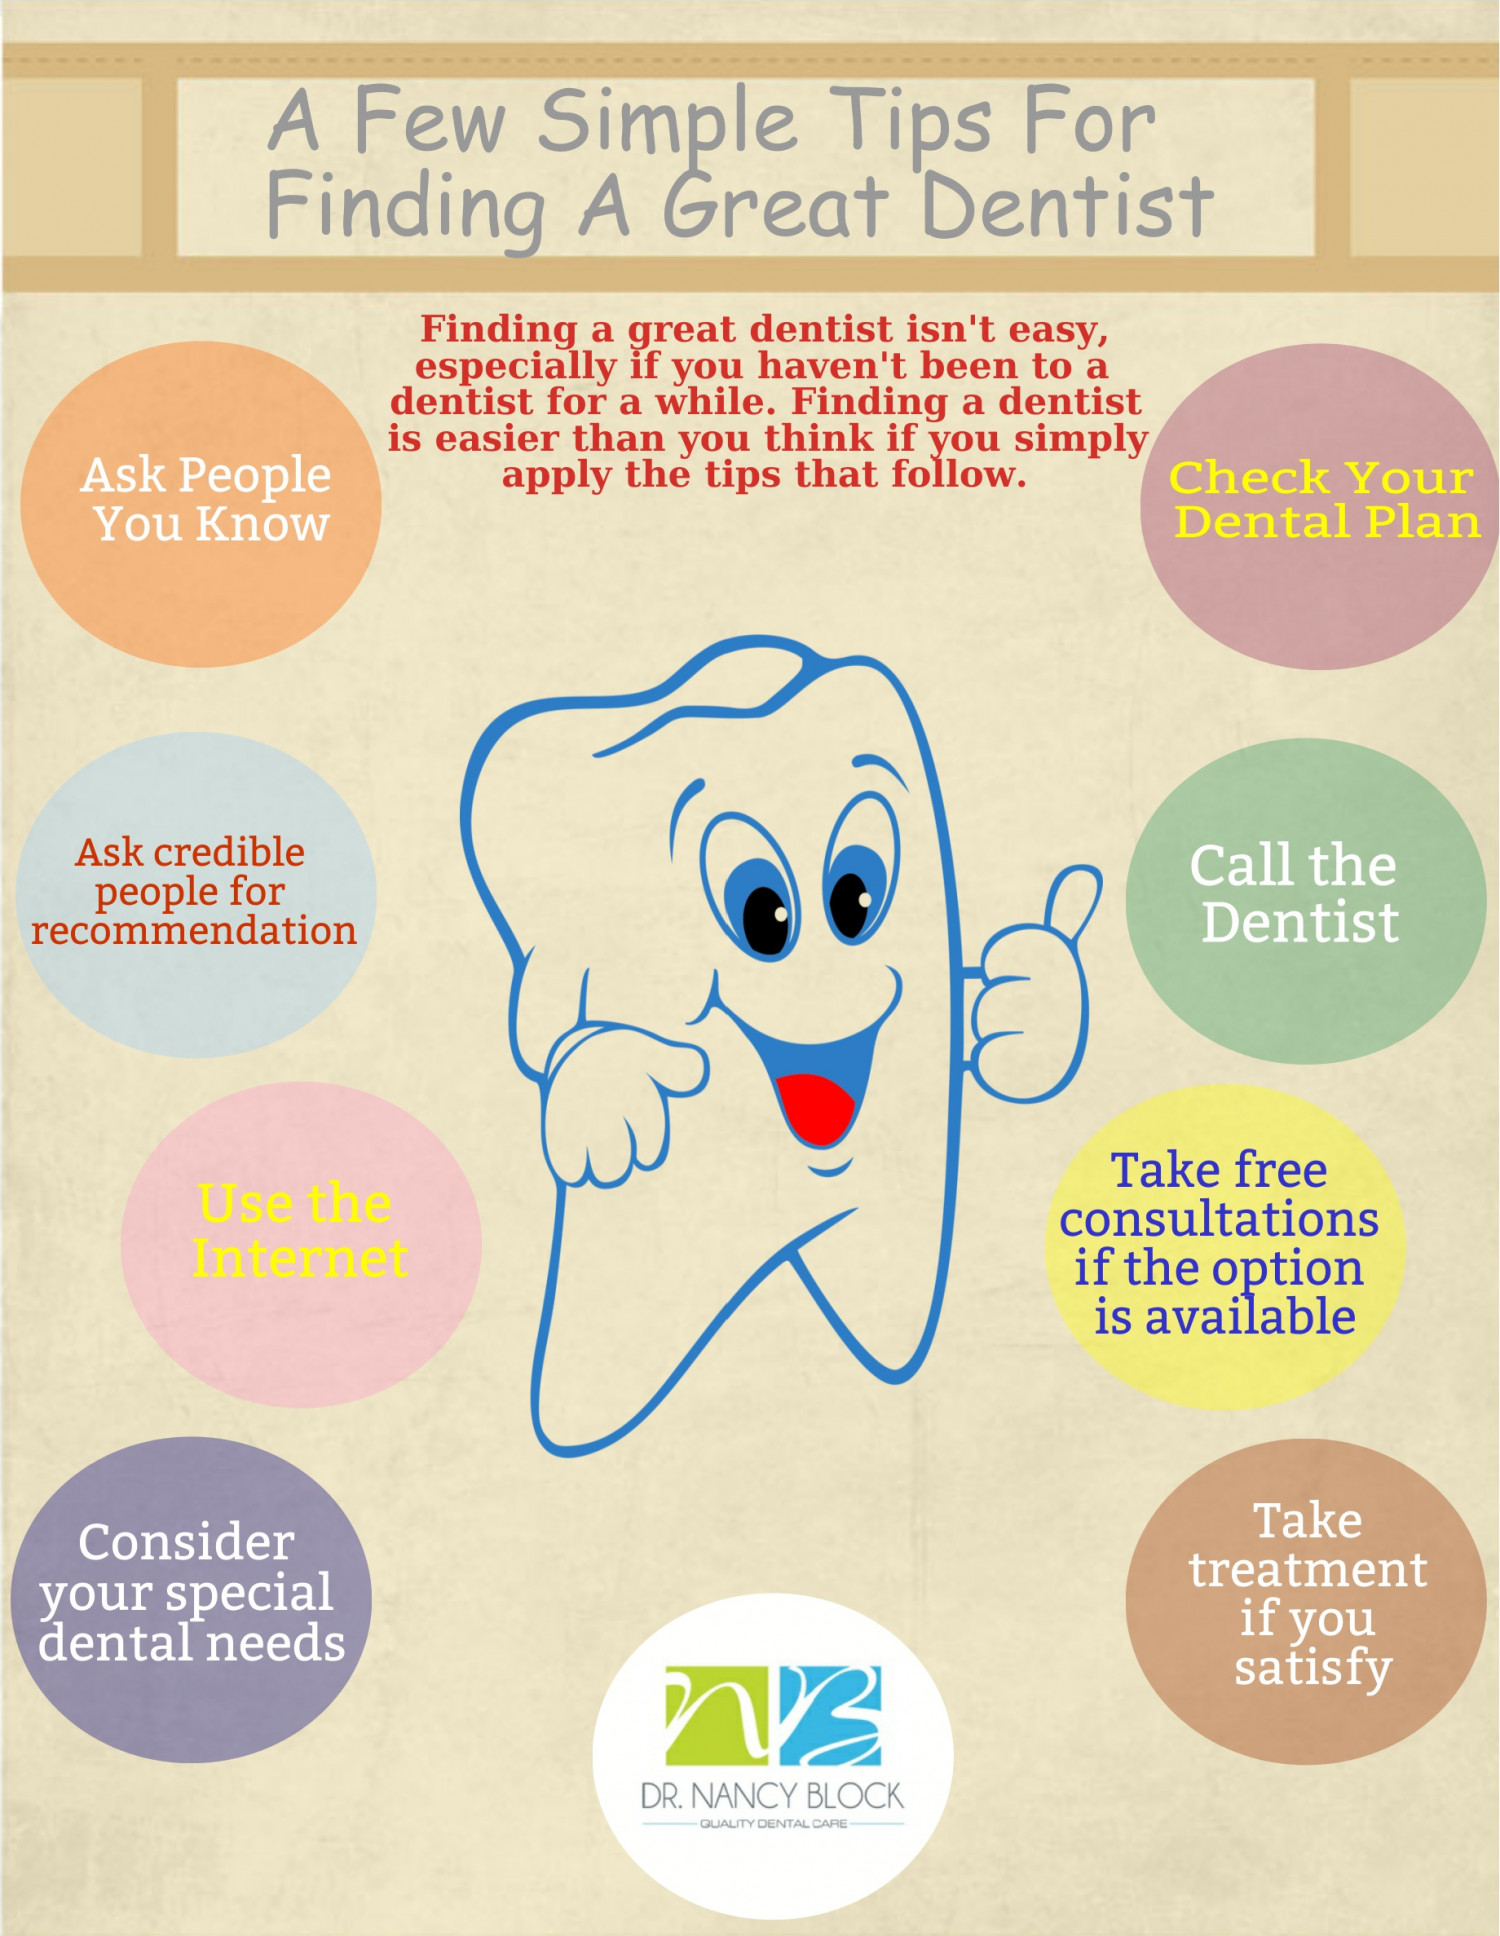 A Few Simple Tips For Finding a Great Dentist Infographic